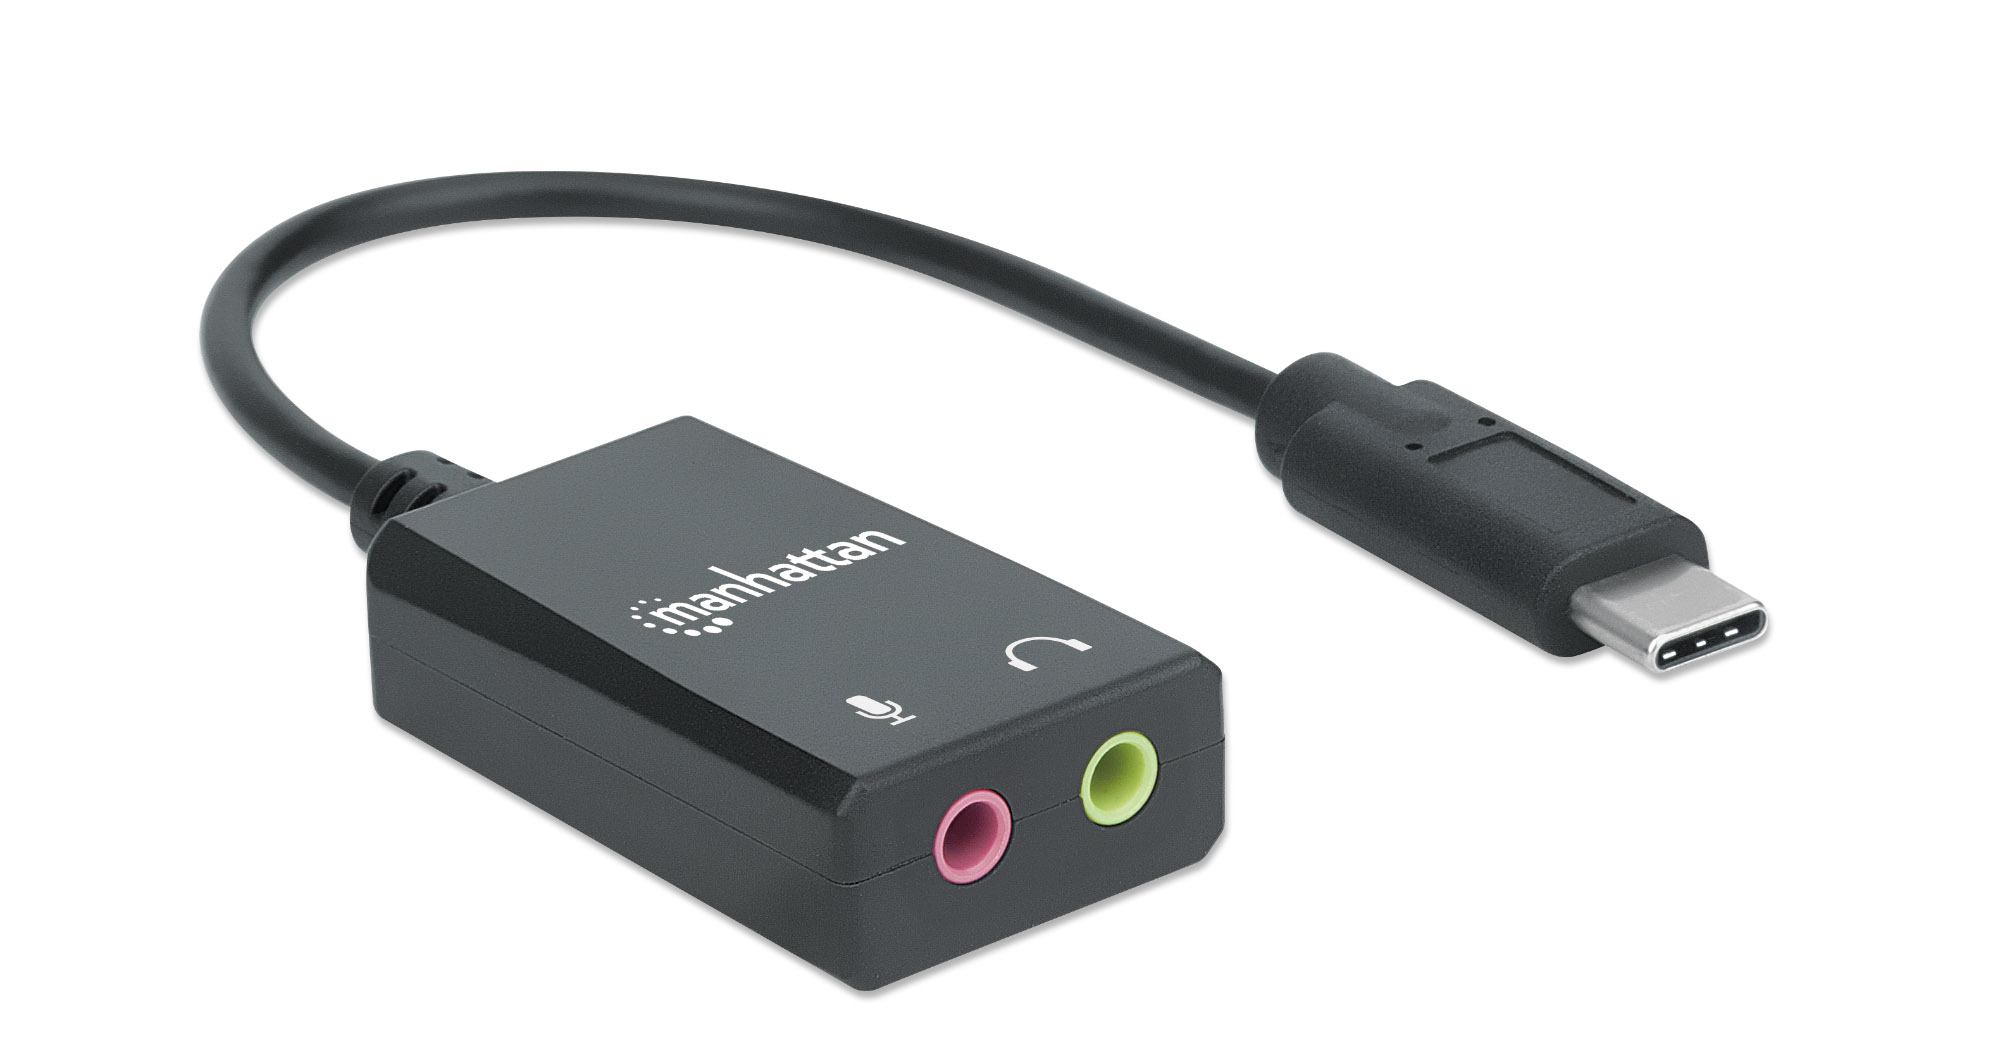 USB-C to 3.5 mm Audio Adapter with Dongle